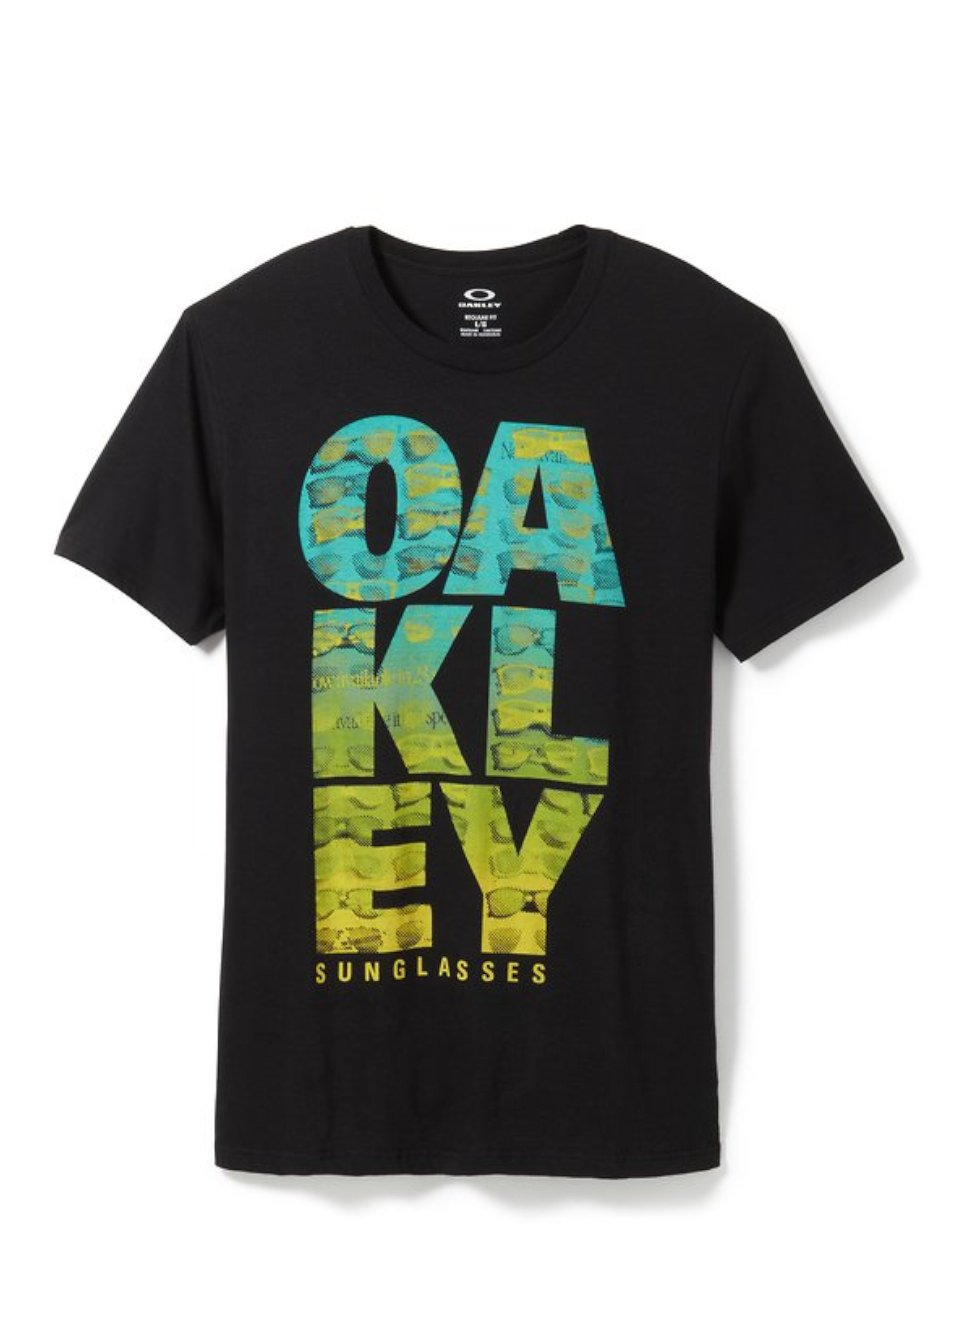 OAKLEY TSHIRT SUNGLASSES - LM SNOWBOARD STORE